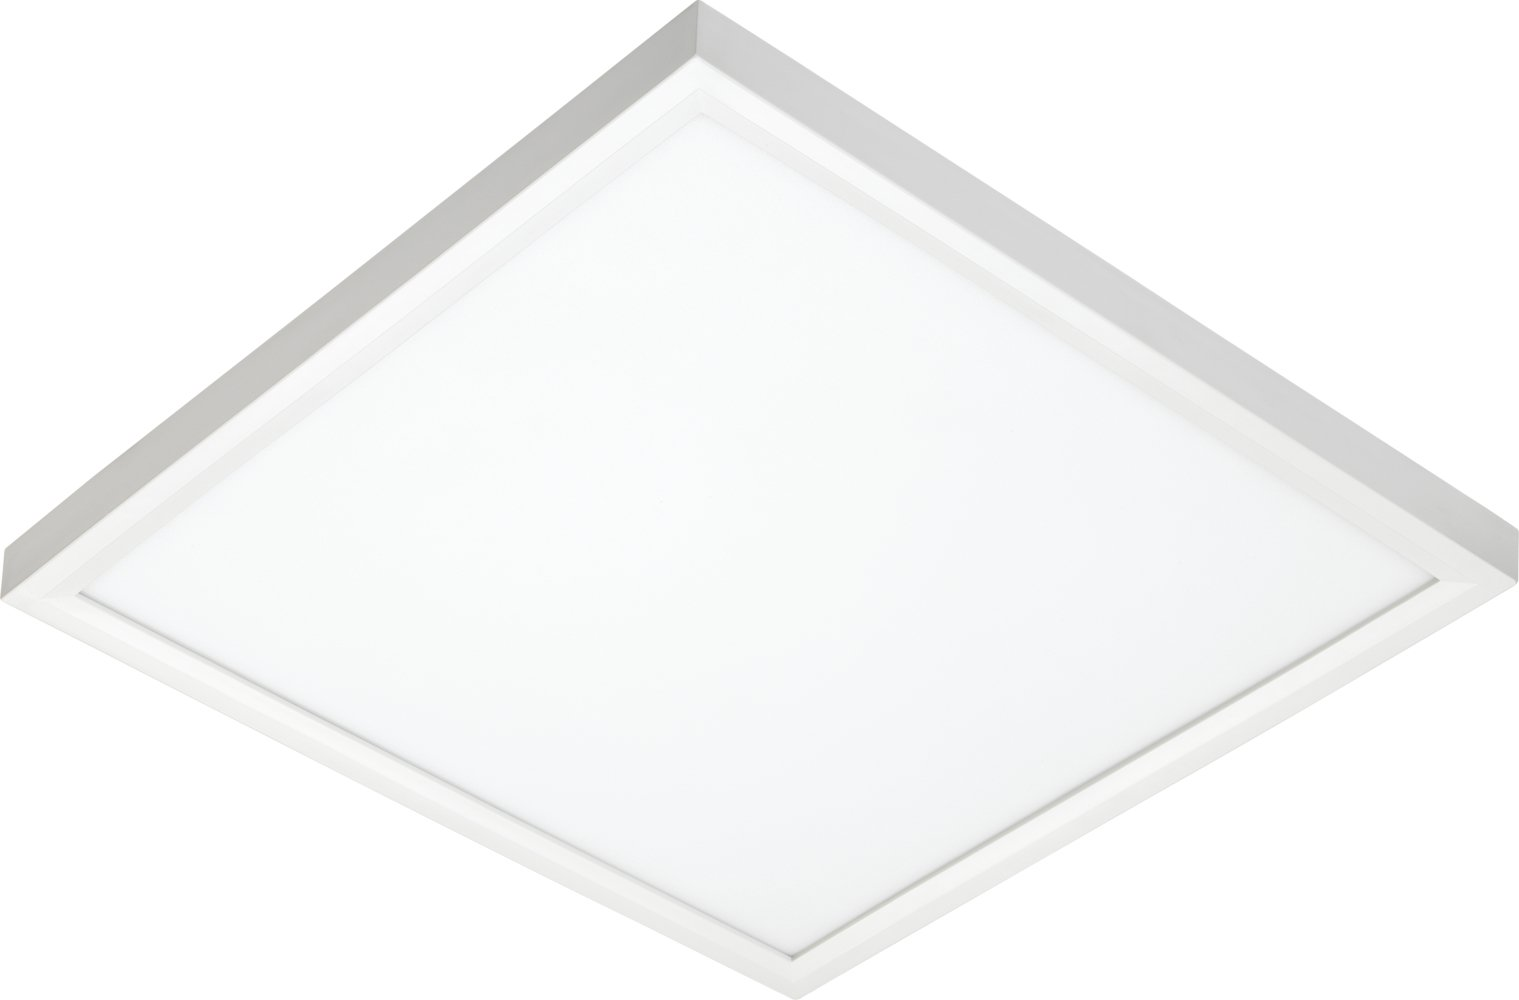 Juno Lighting Jsfsq 14IN 18LM 30K 90CRI Mvolt ZT WH Interior Lights, 14 inch-Square, White